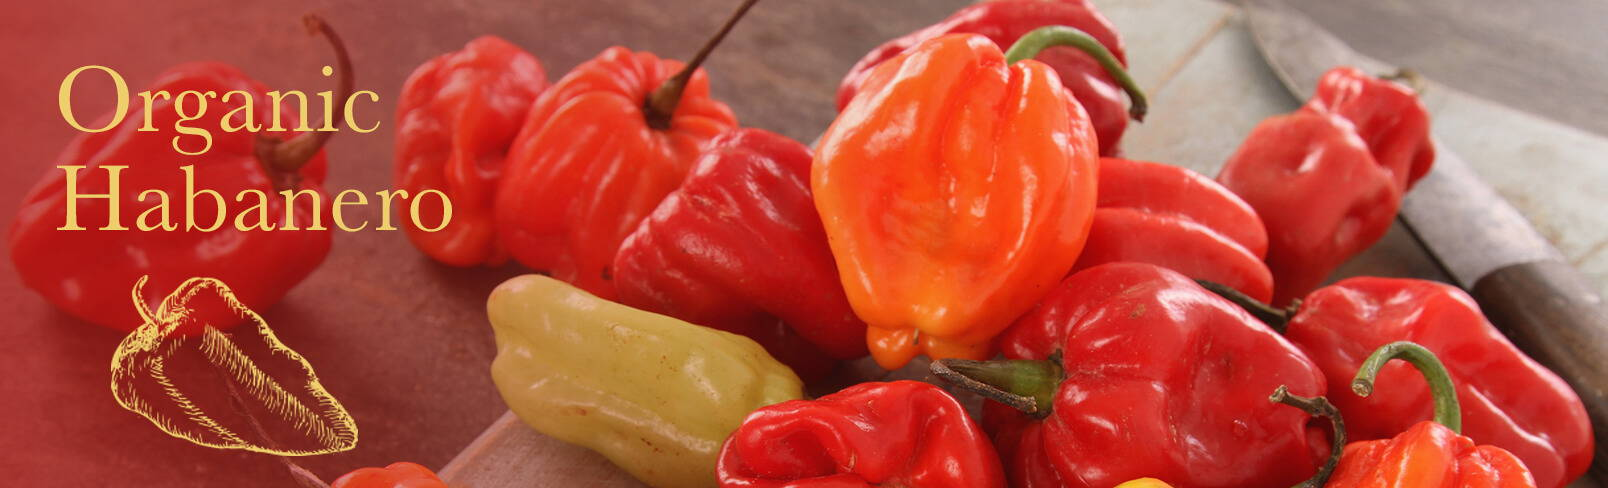 High Quality Organics Express Habanero Peppers